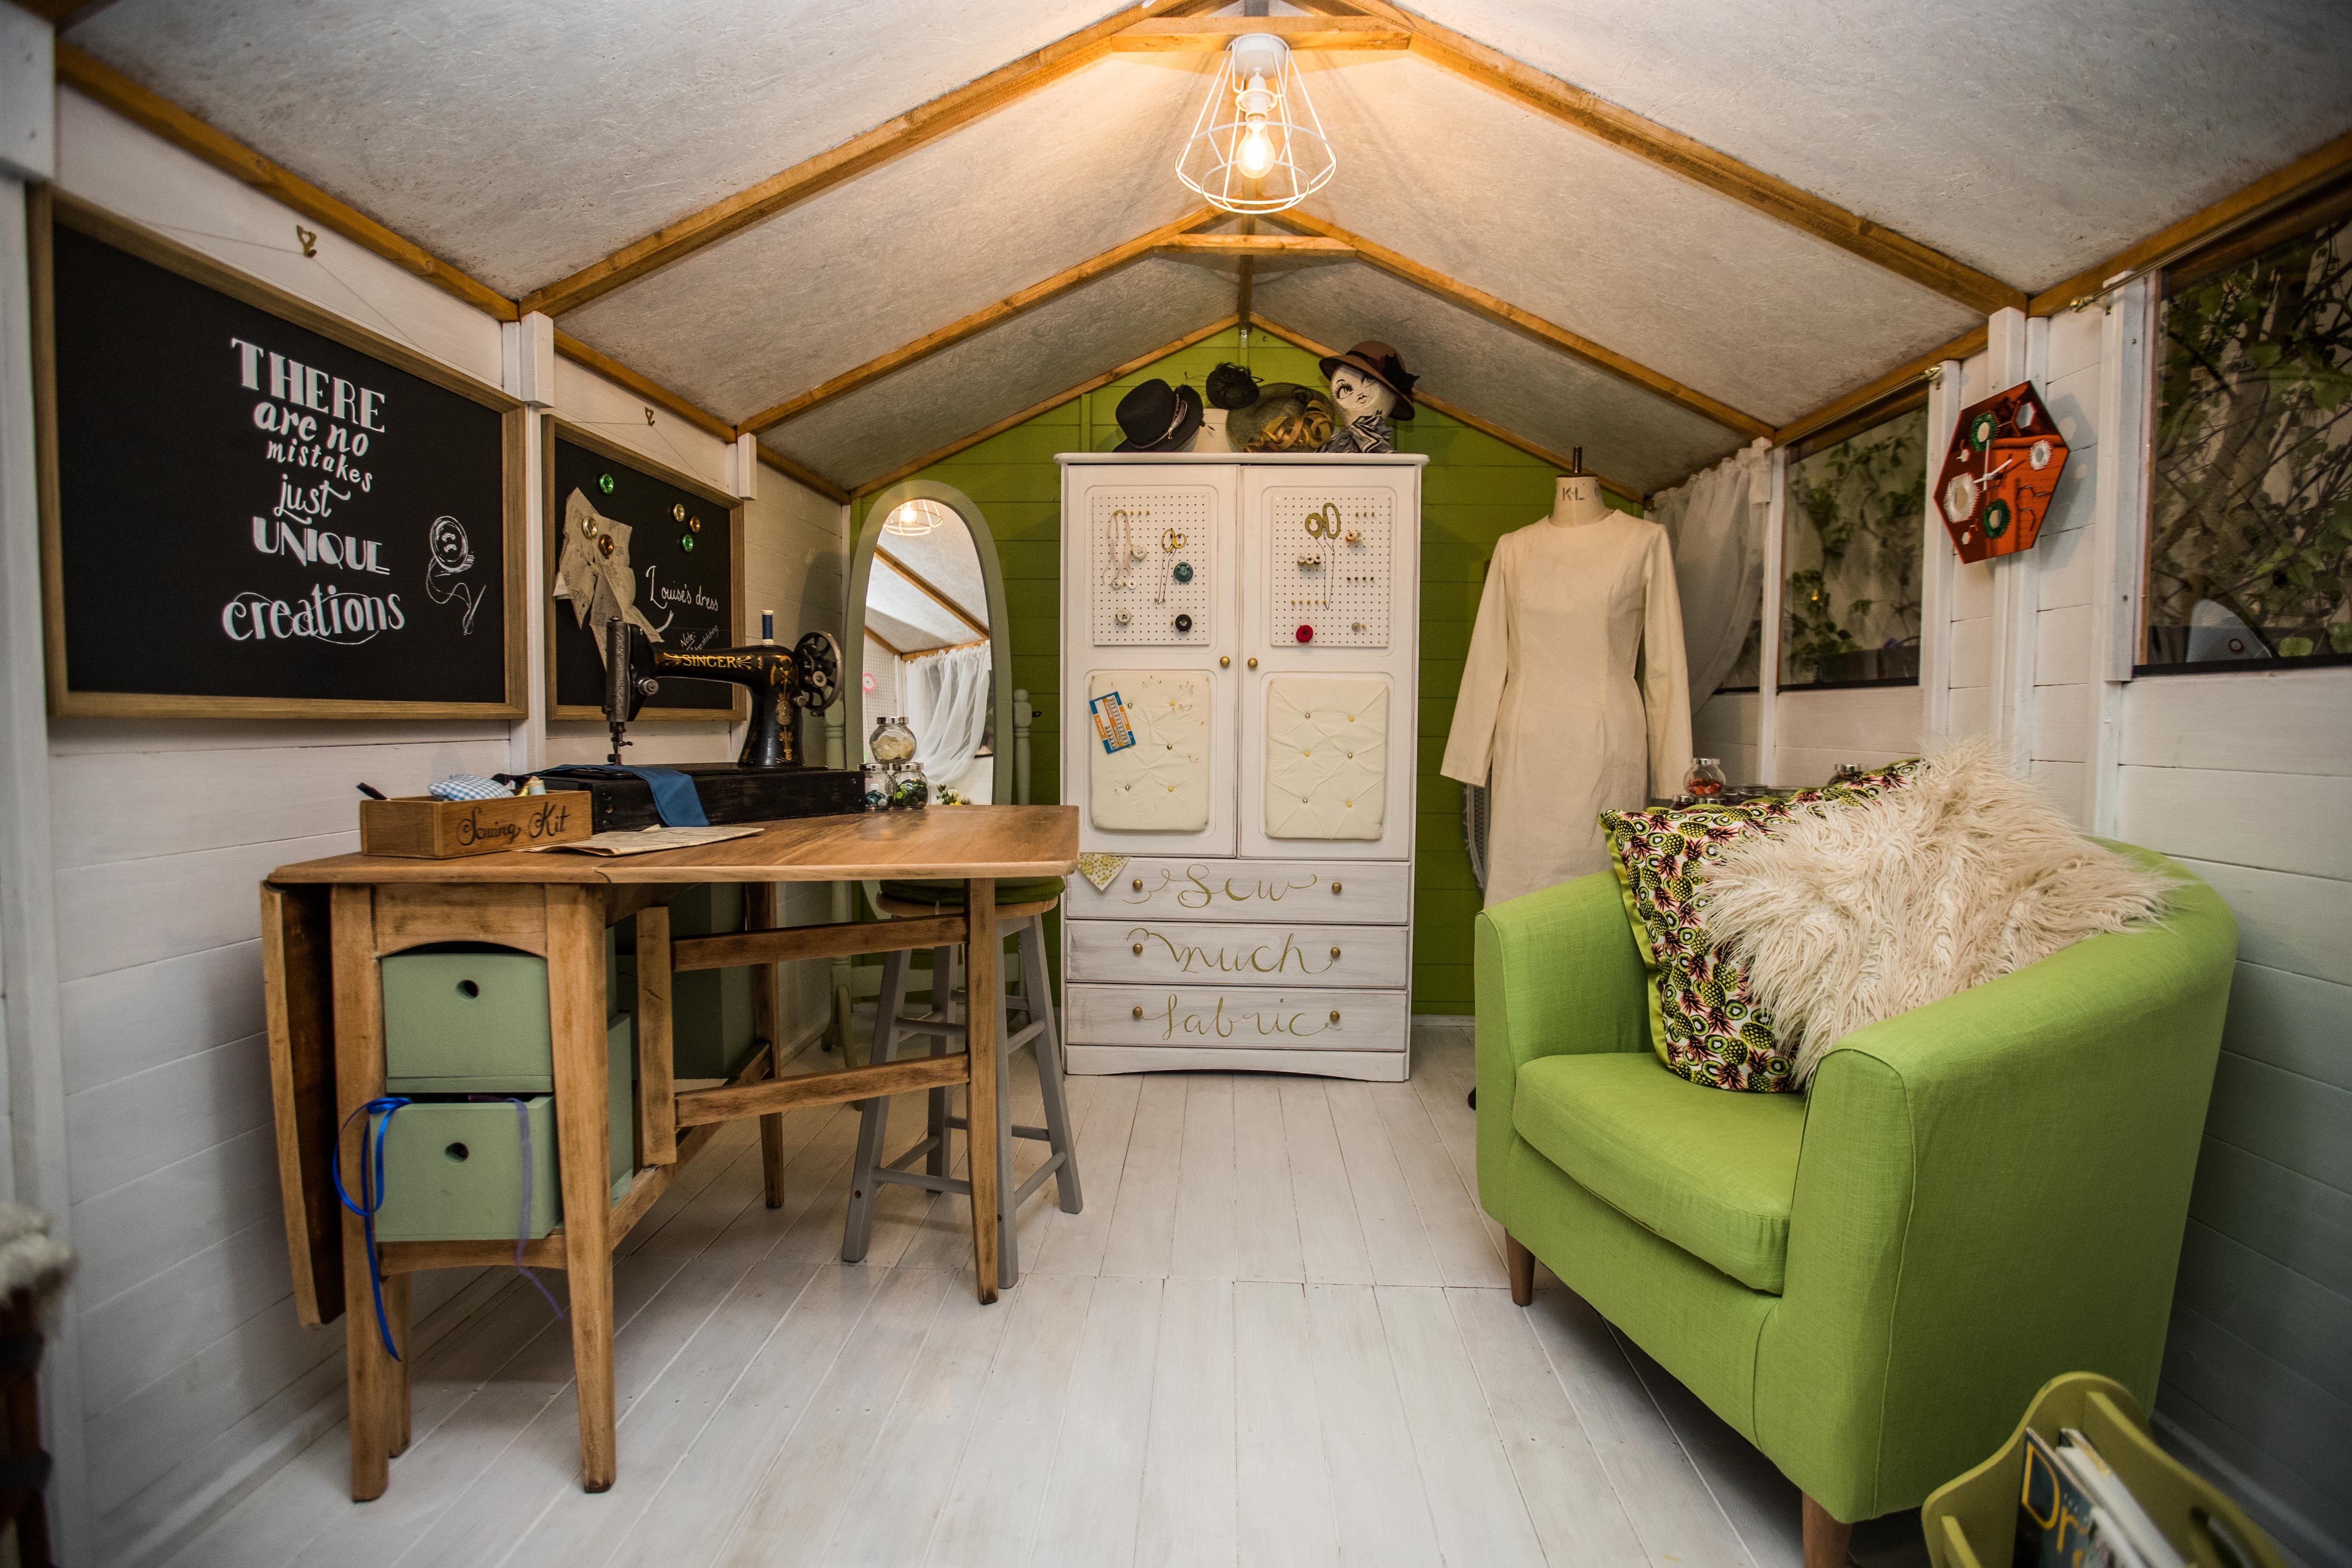 The Interior Design Of Sewing Shack Shed Part Grand Project Compeion At